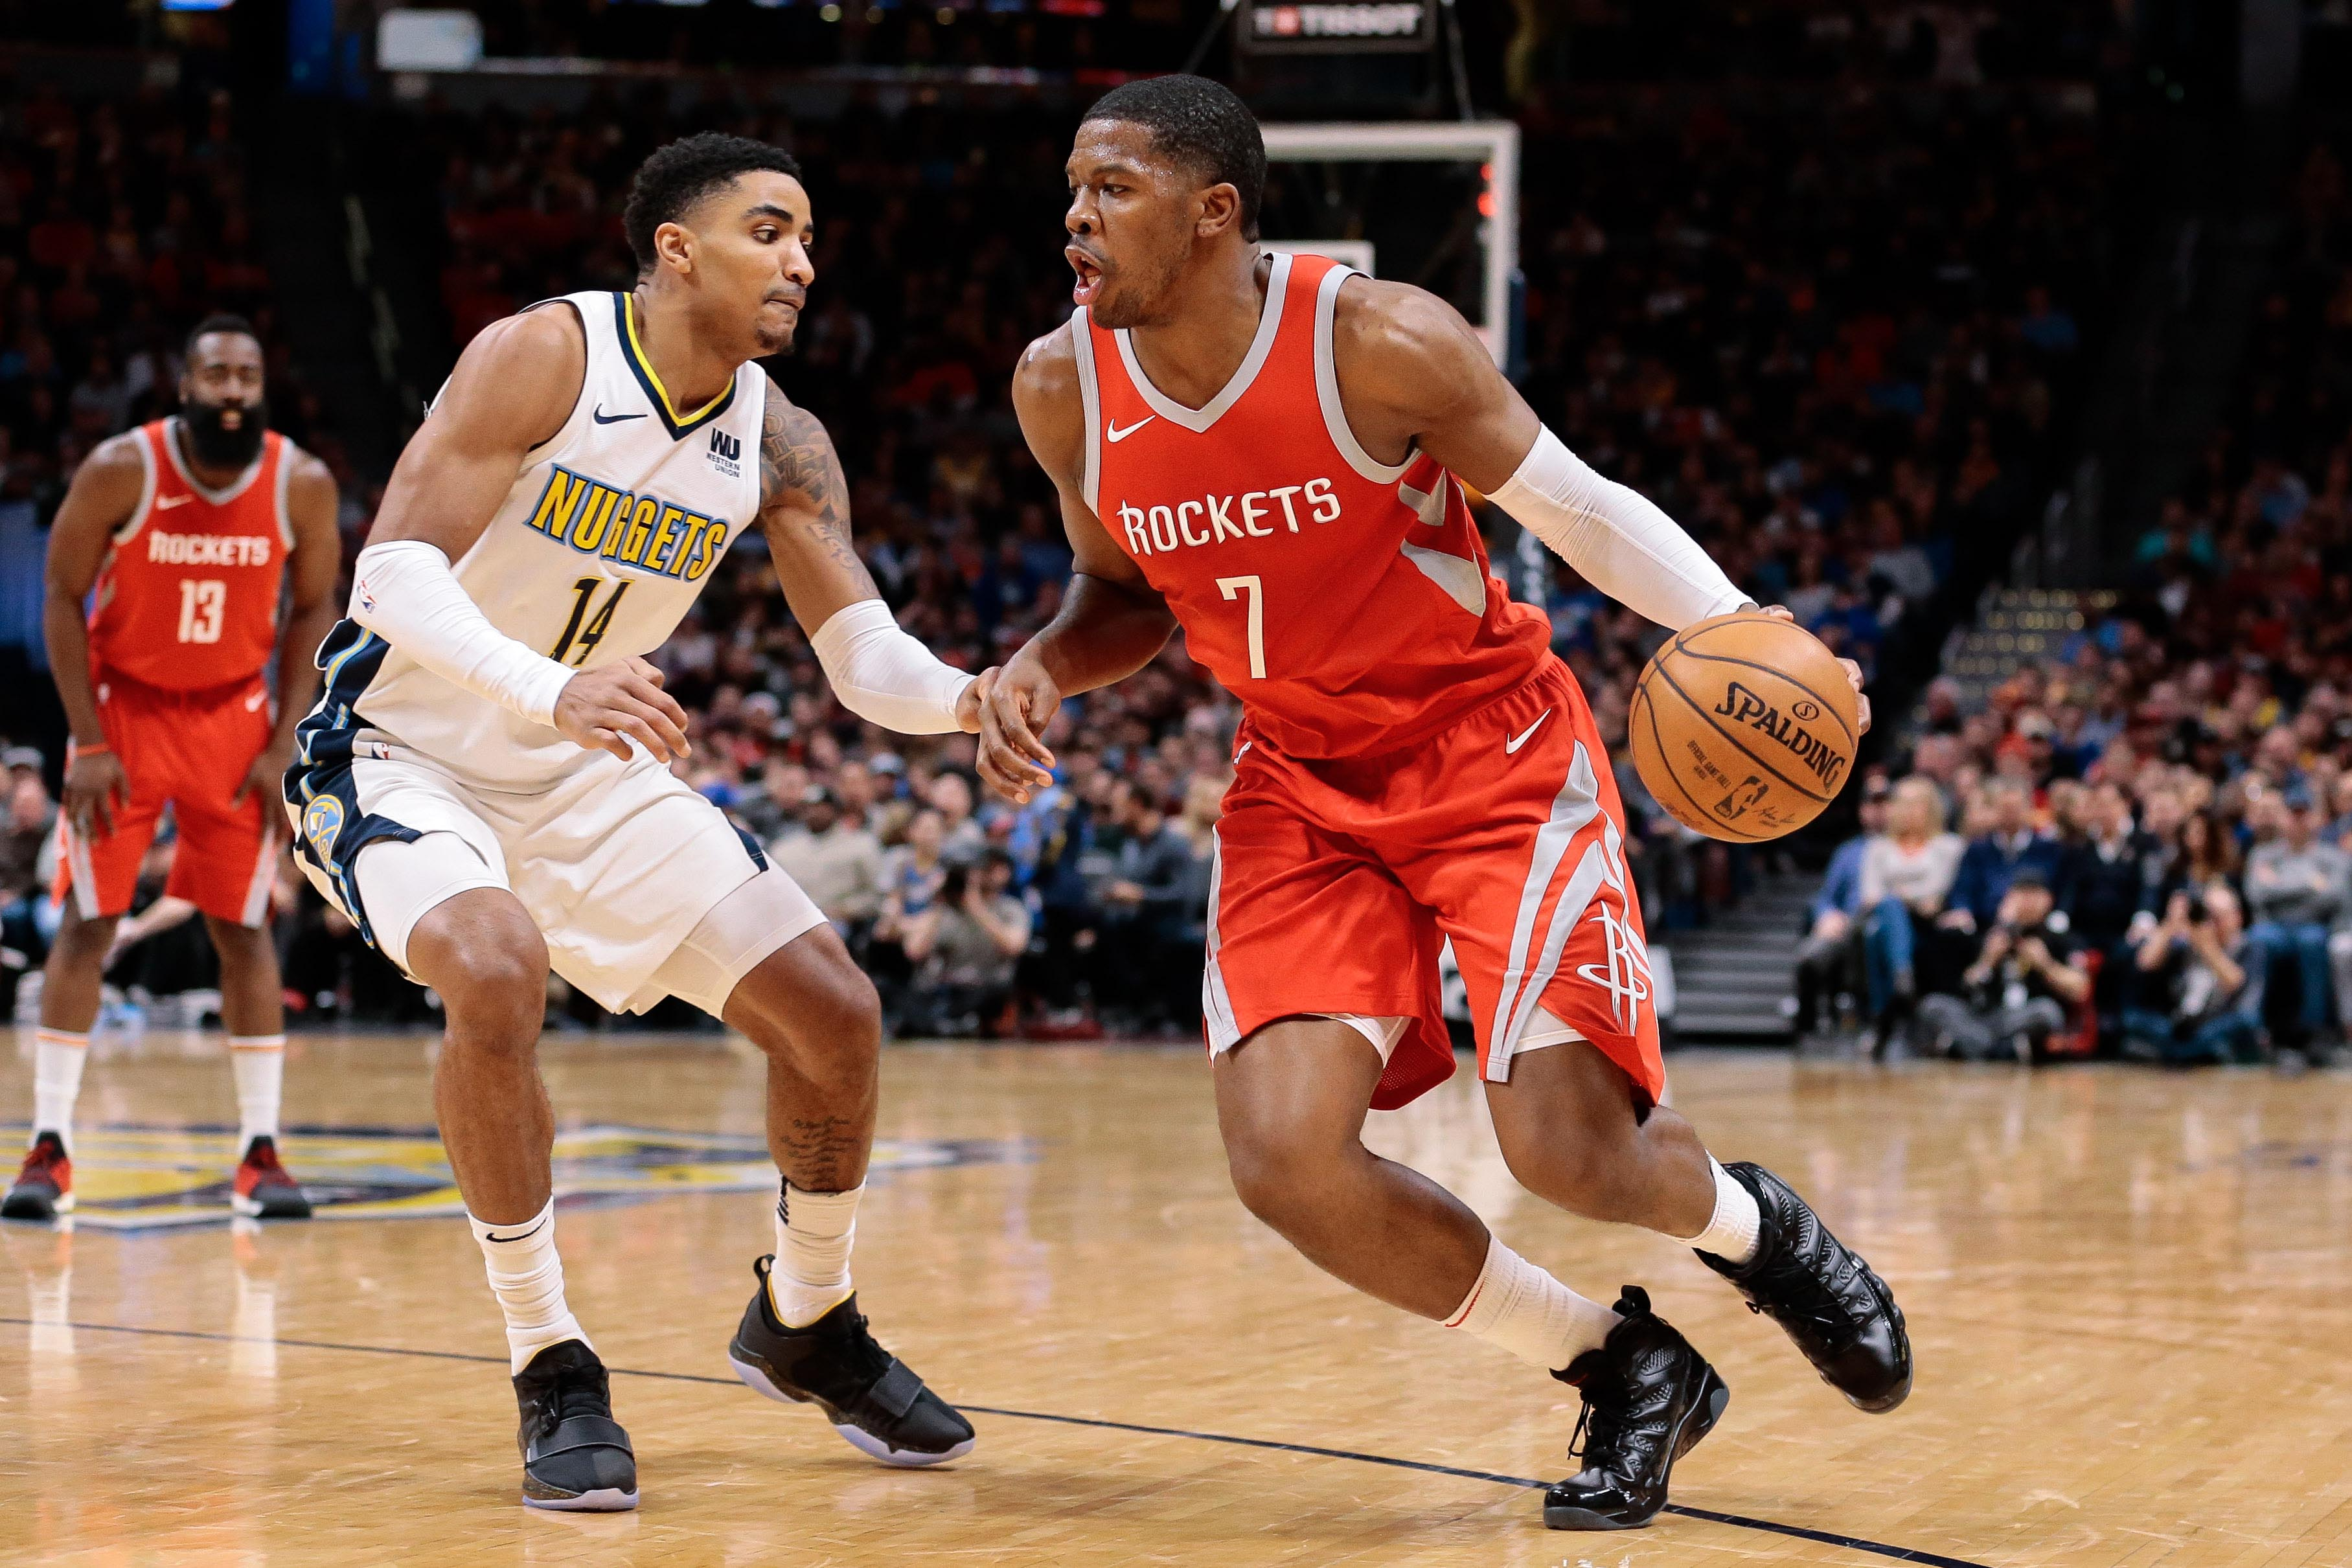 Feb 25, 2018; Denver, CO, USA; Denver Nuggets guard Gary Harris (14) guards Houston Rockets guard Joe Johnson (7) in the fourth quarter at the Pepsi Center.